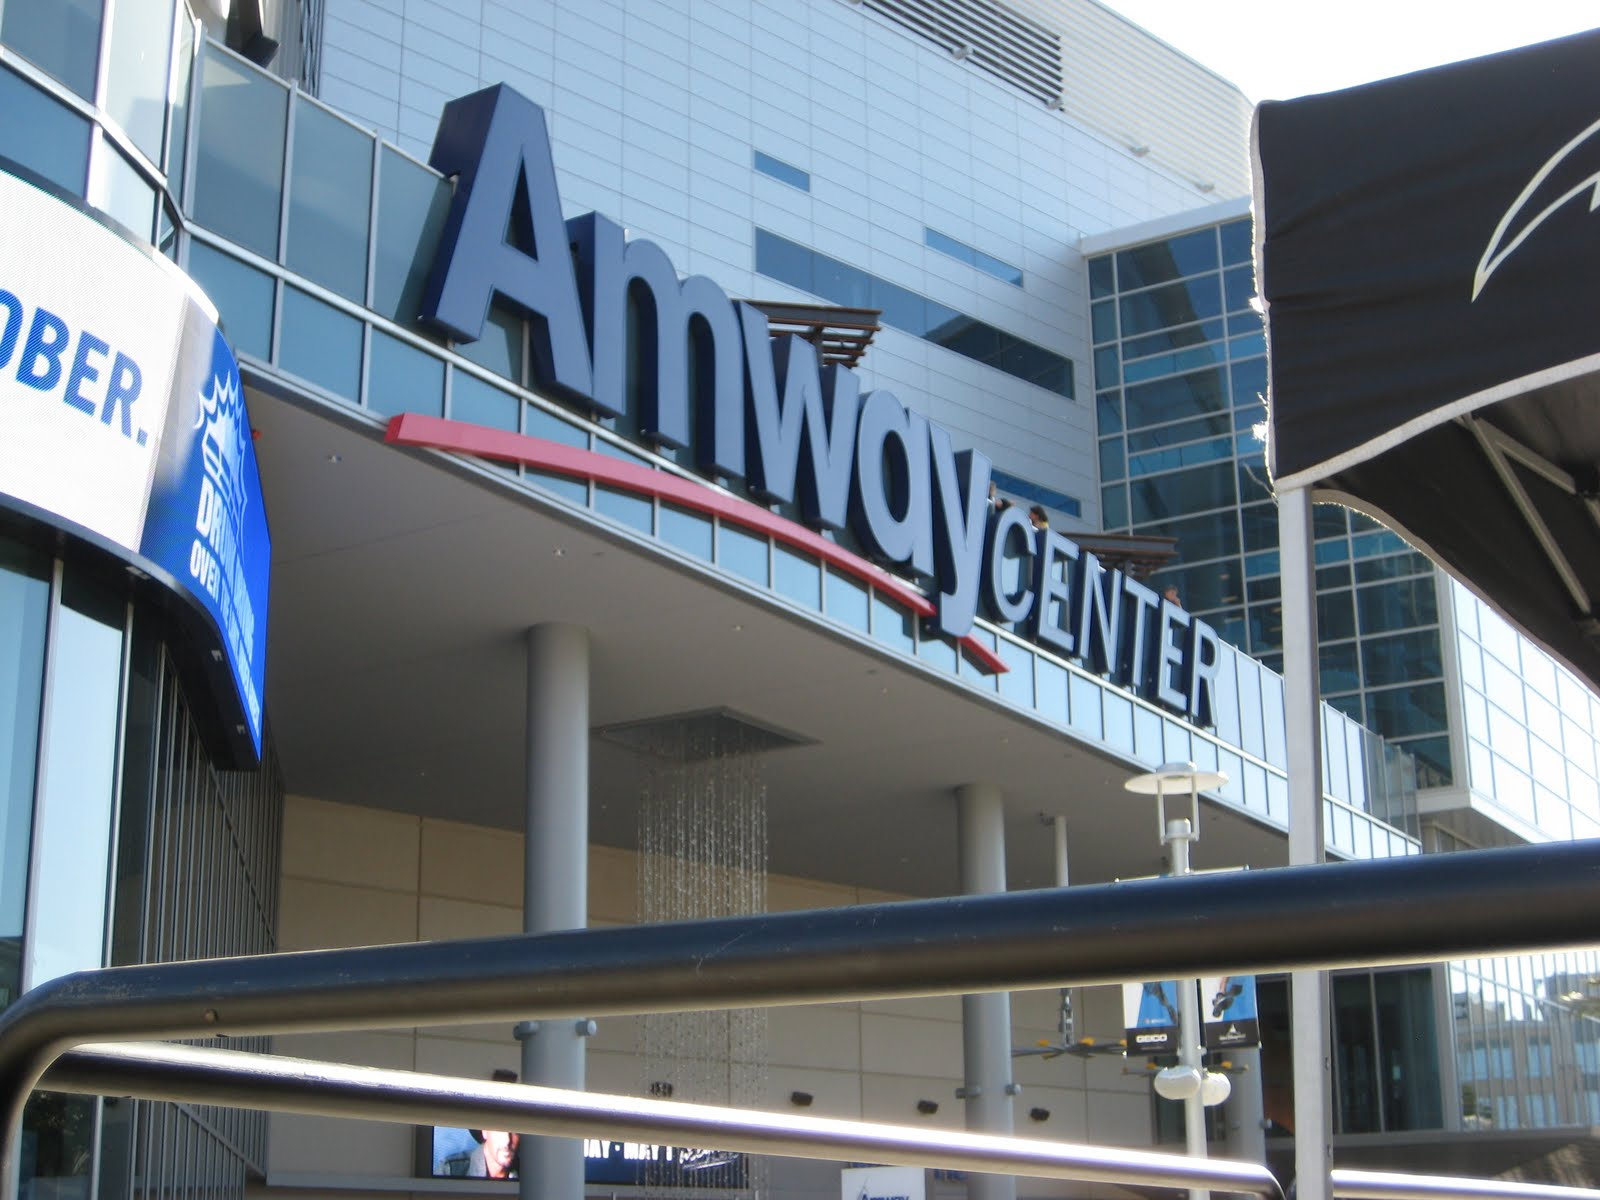 Save pleasure island club reports amway center one80 i for Mercedes benz lounge amway center